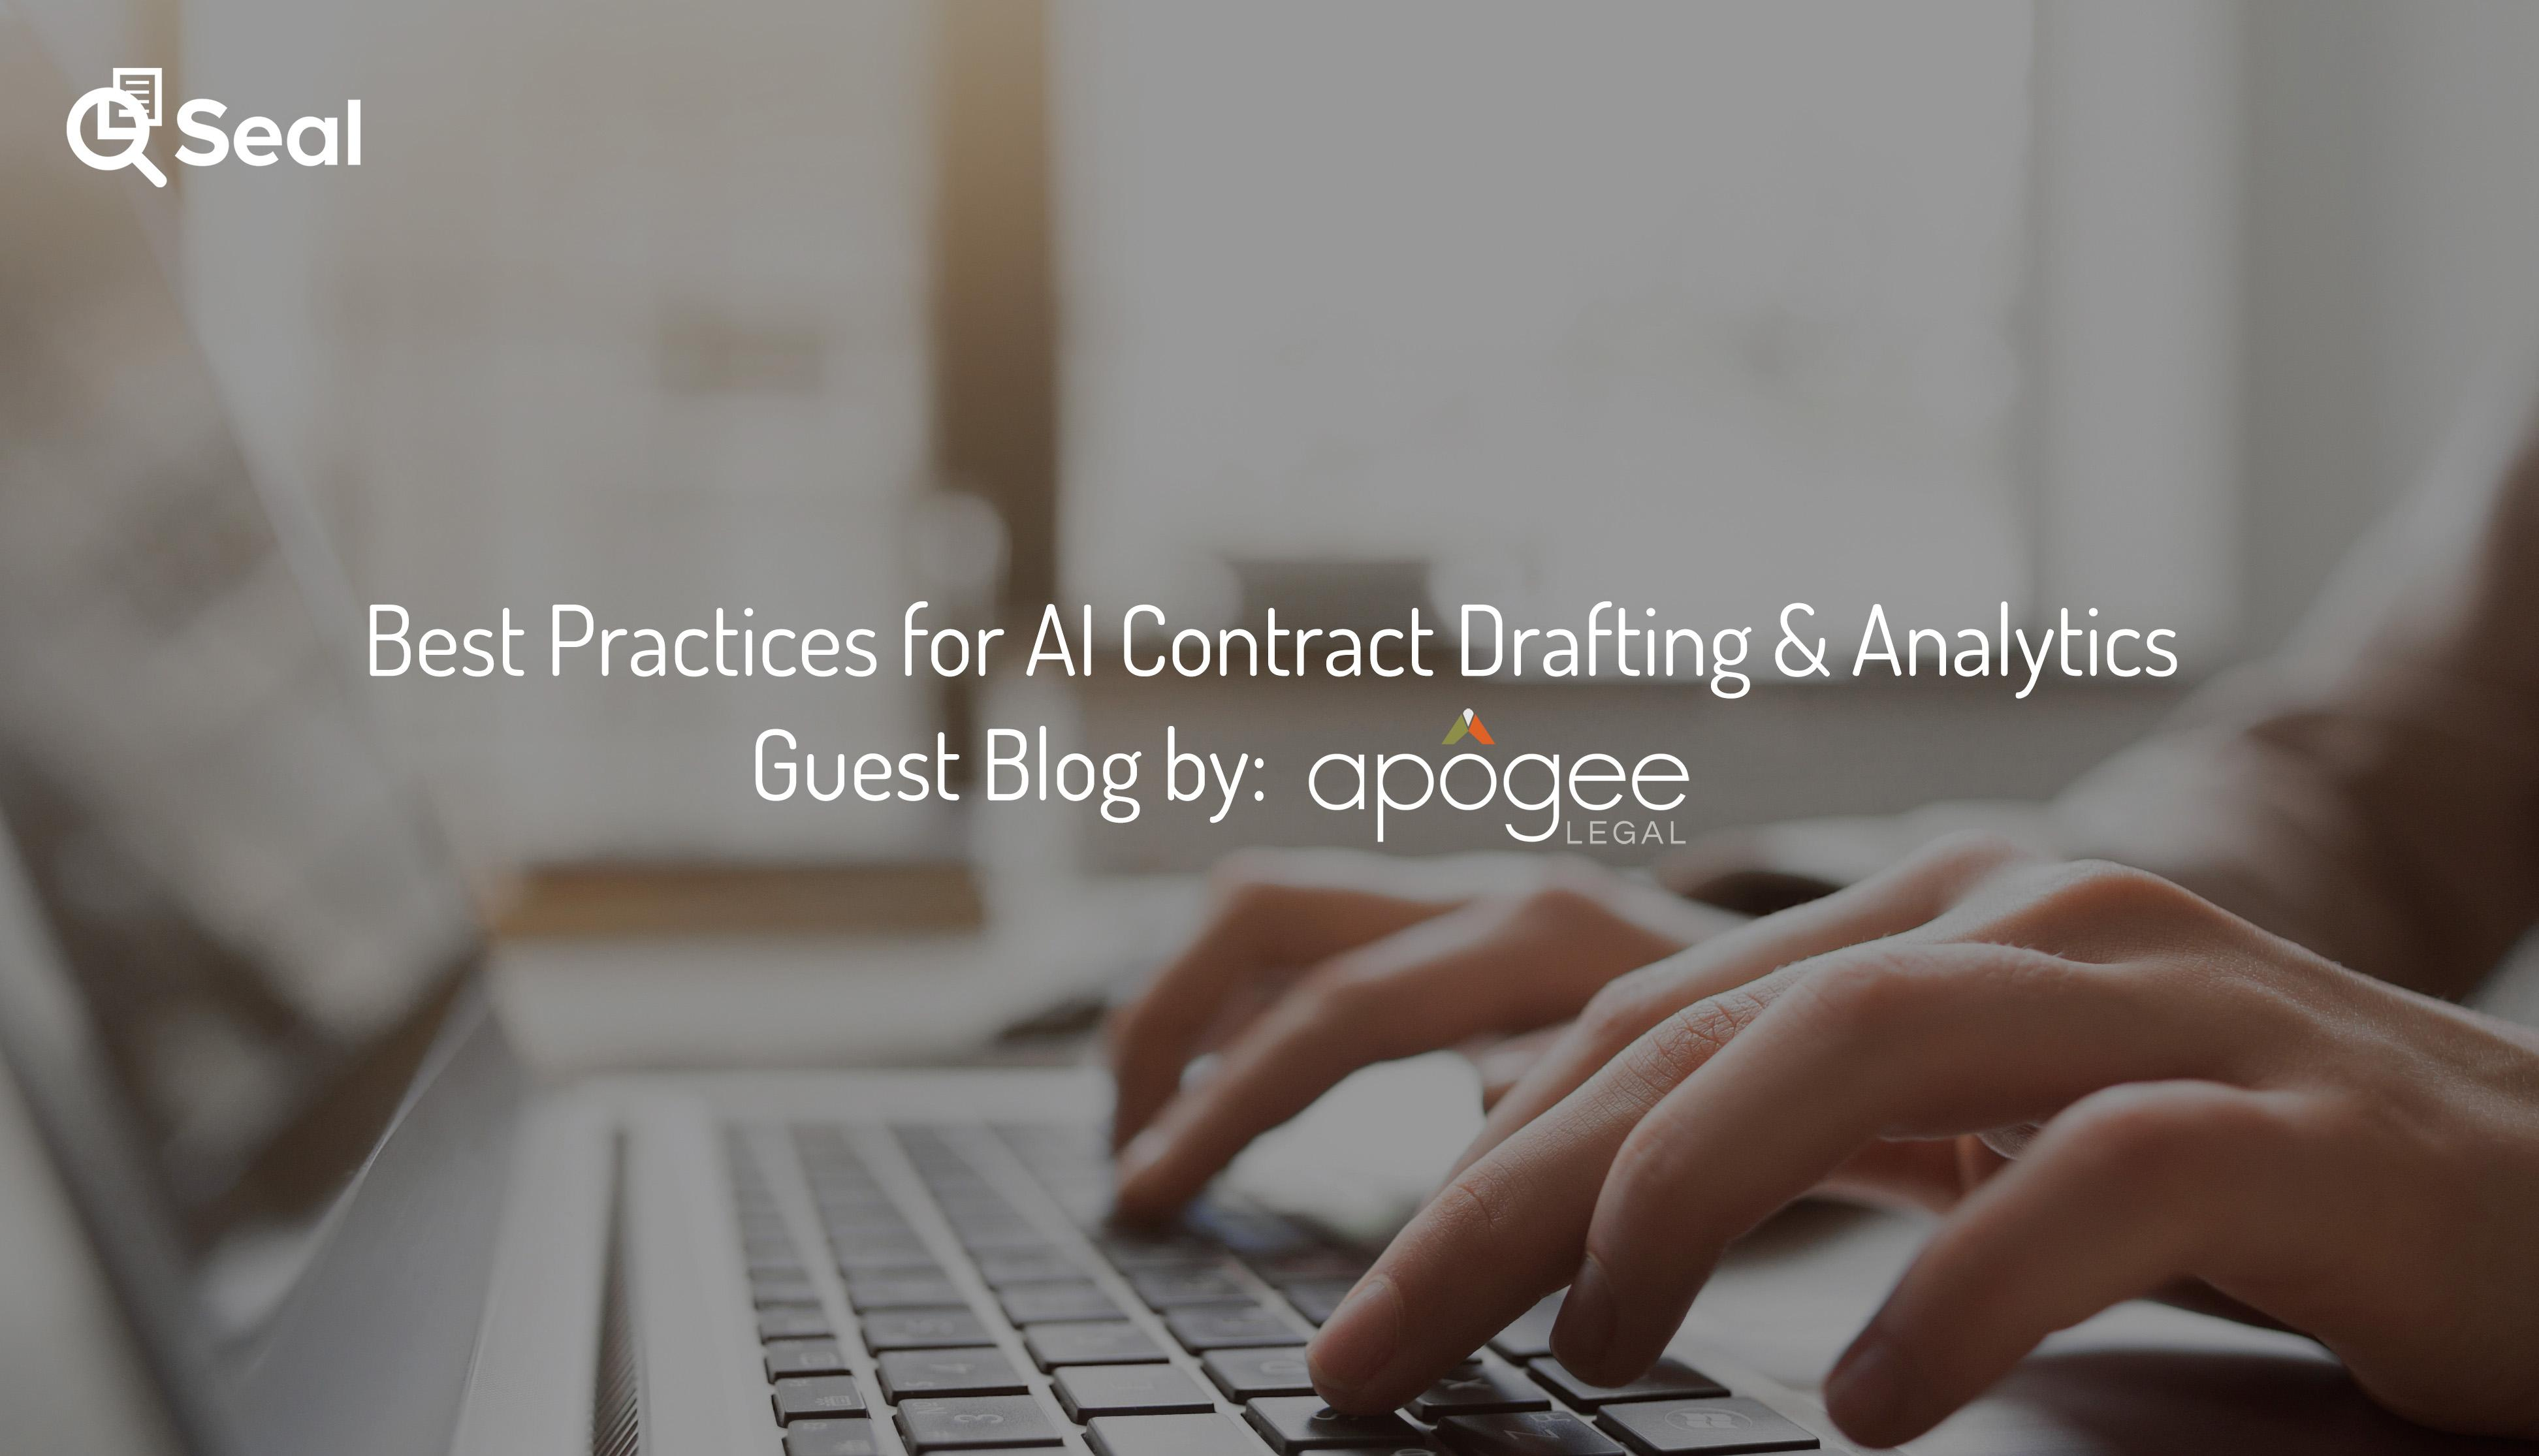 Best Practices for AI Contract Drafting & Analytics